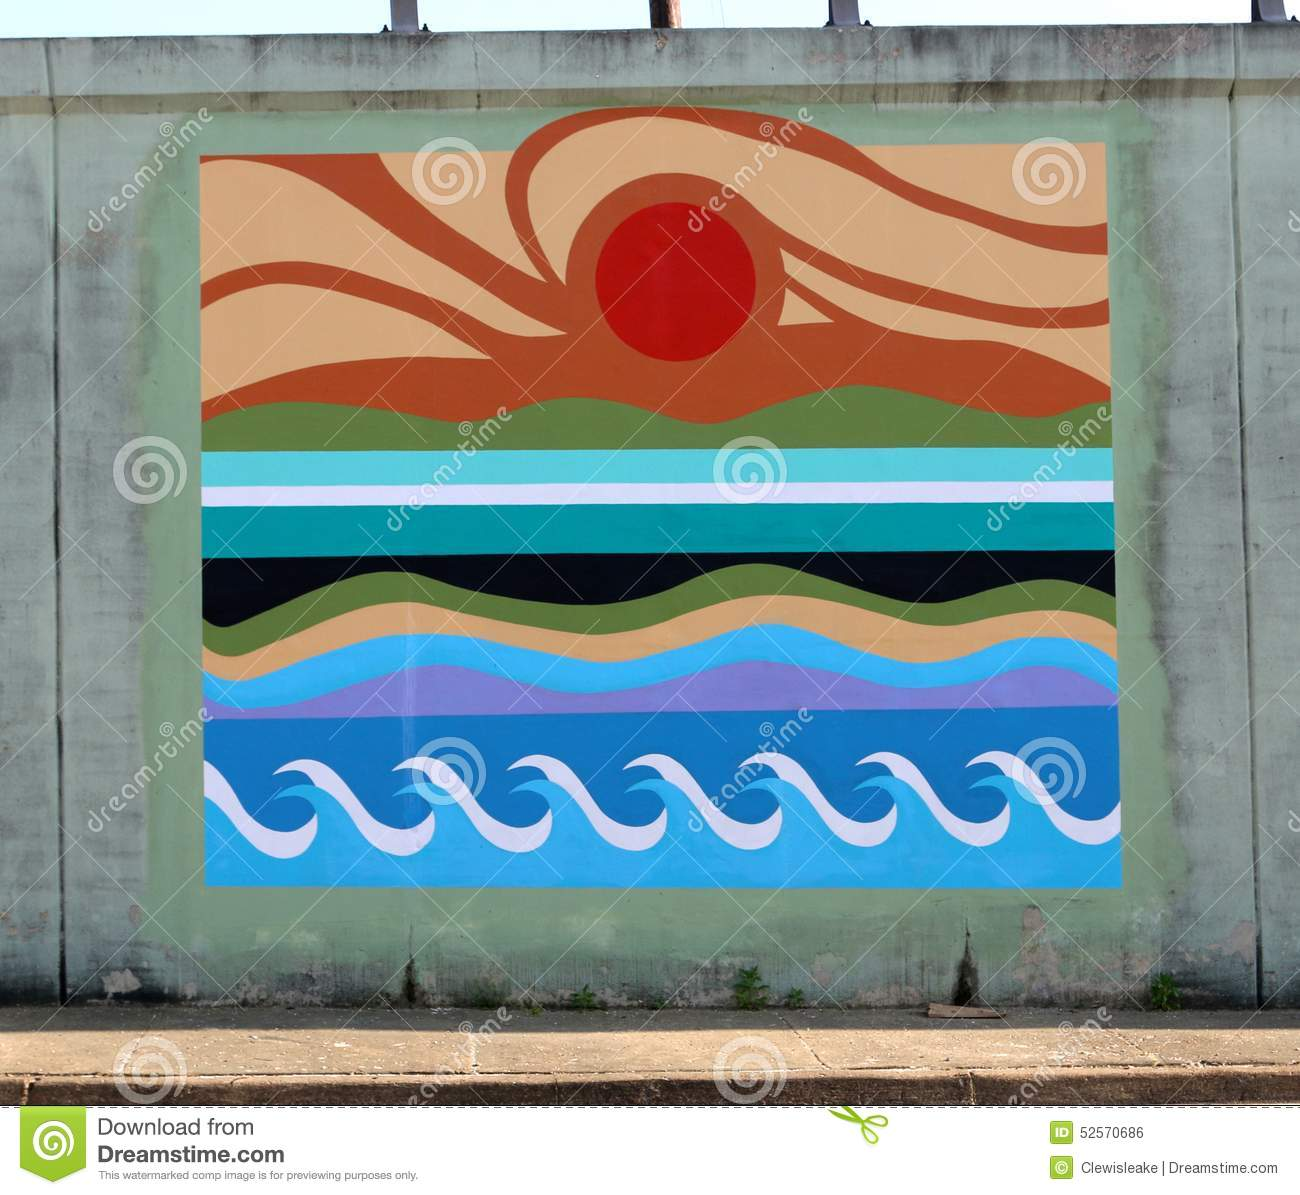 ocean wave pattern wall mural on a bridge underpass on james rd in ocean wave pattern wall mural on a bridge underpass on james rd in memphis tn